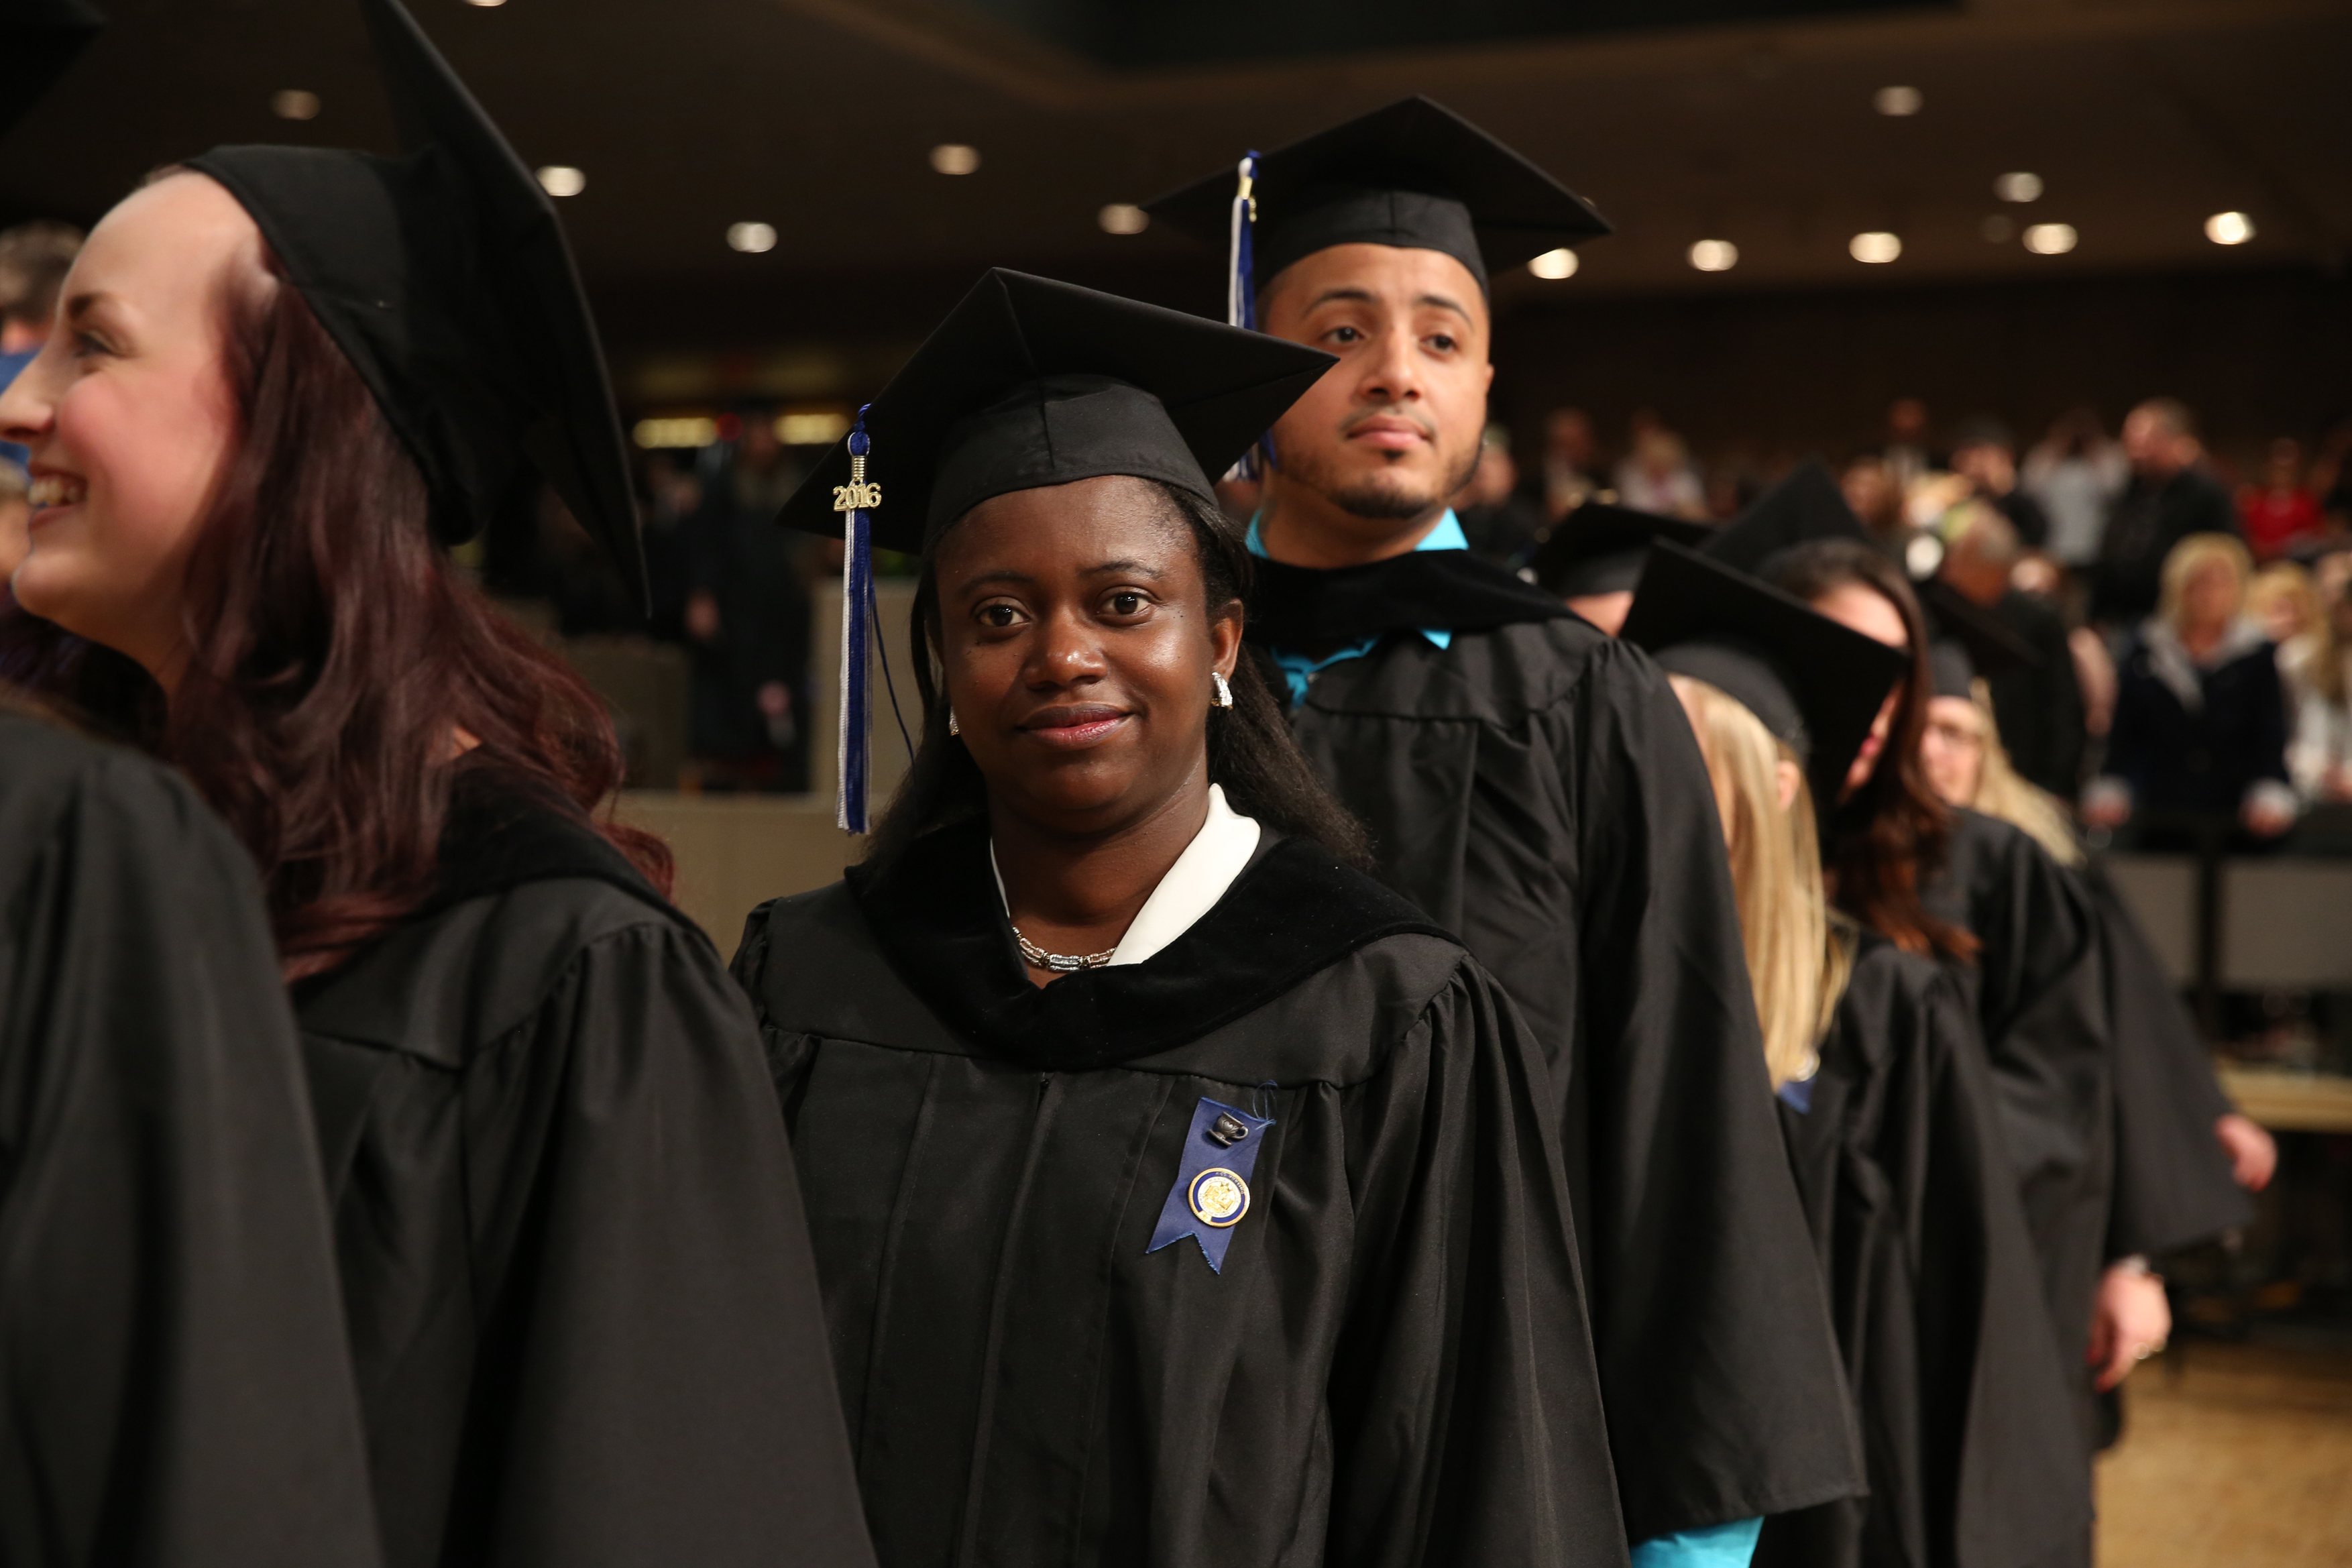 Commencement 2016 students wearing regalia